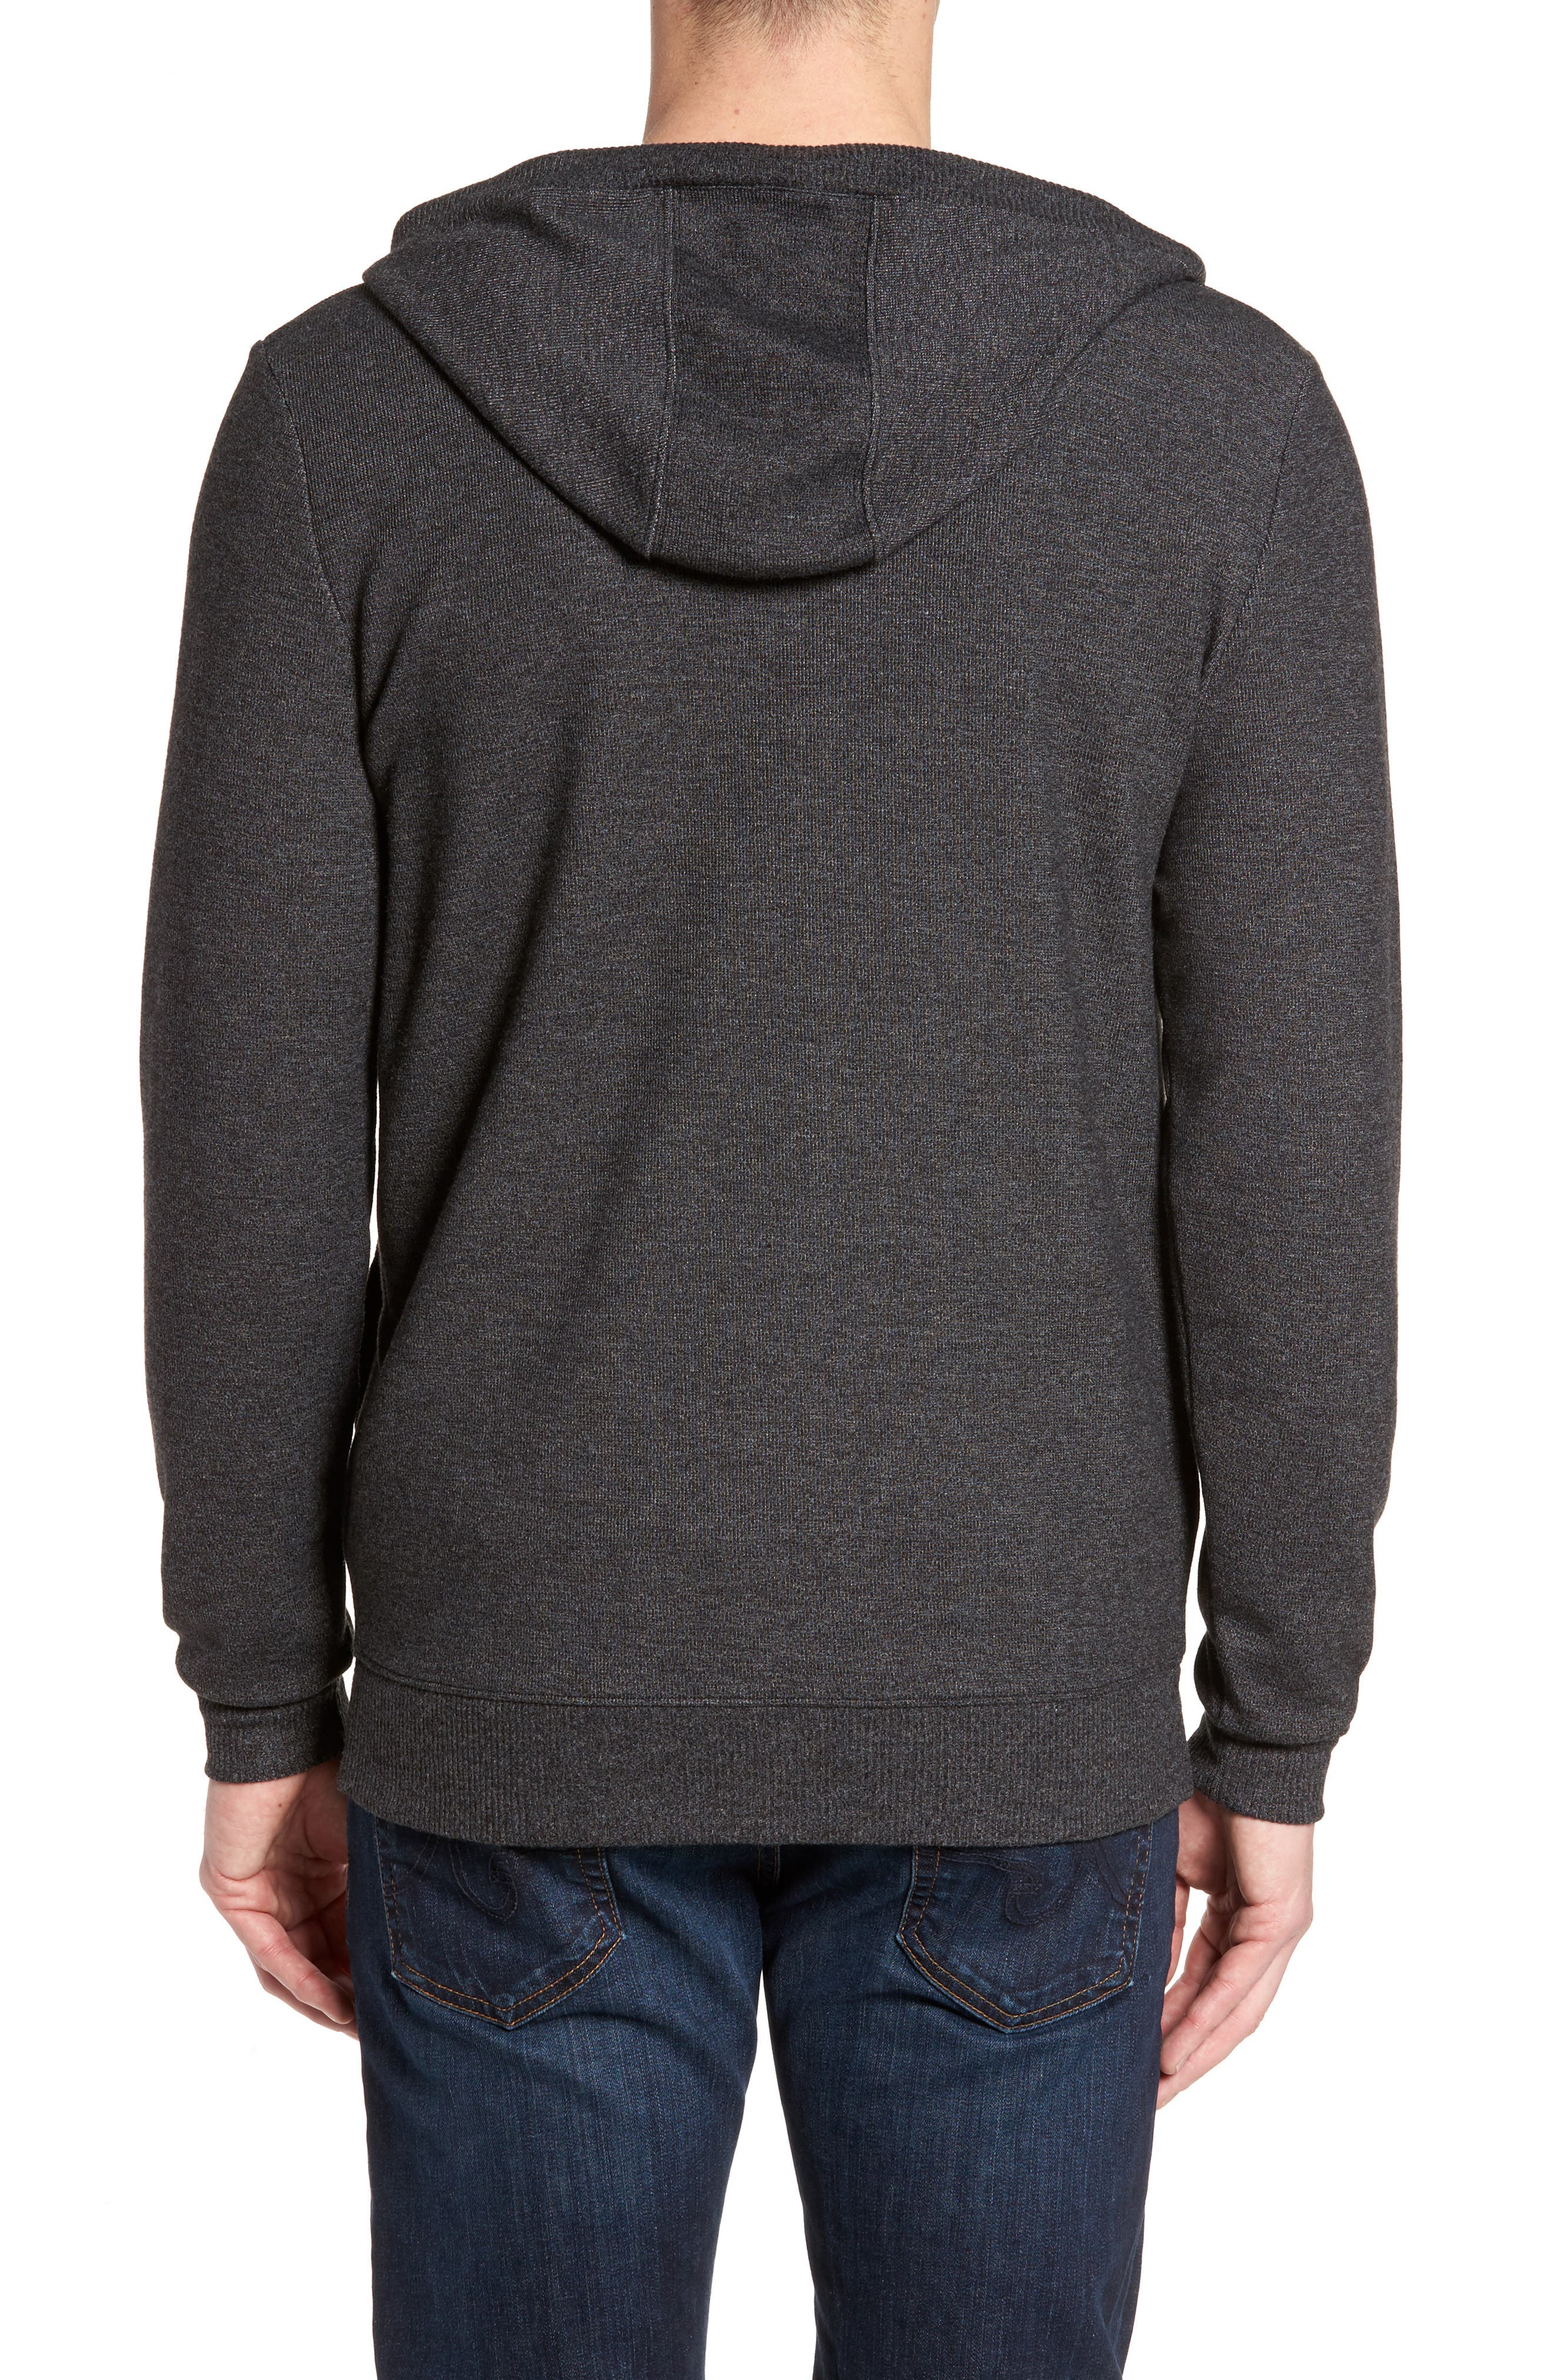 Snare Zip Front Hooded Cardigan,                             Alternate thumbnail 2, color,                             001